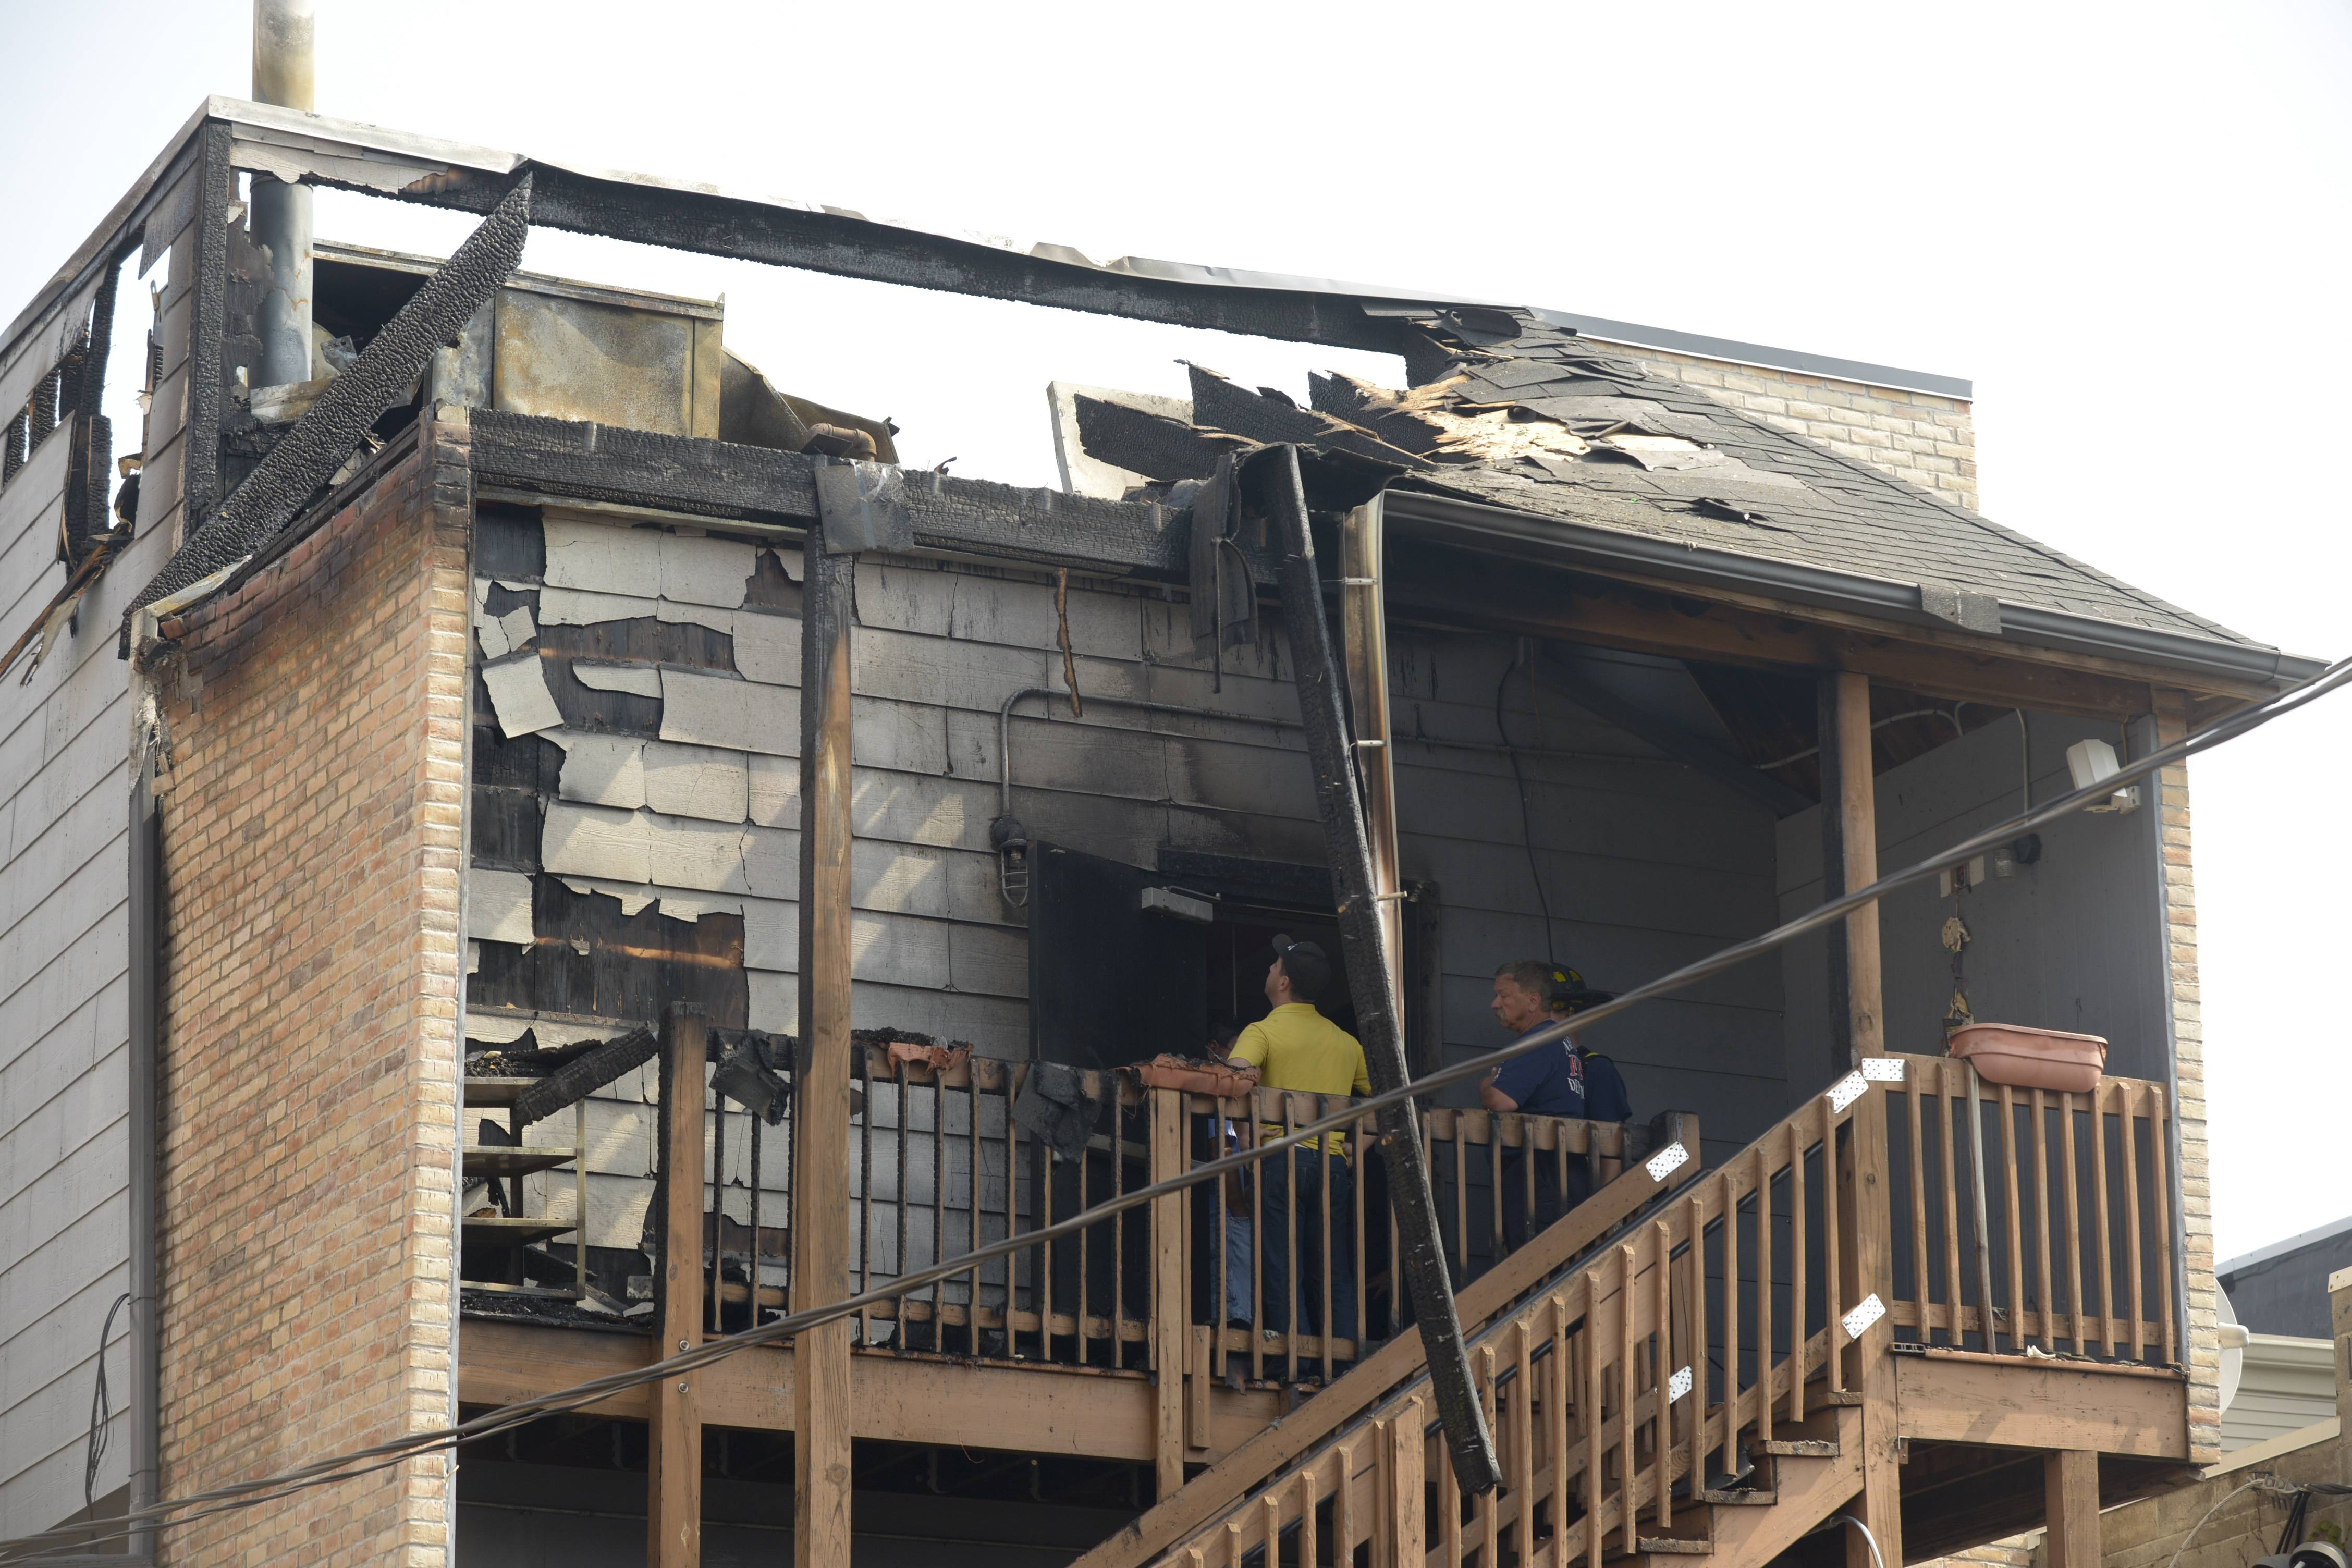 Naperville Fire Marshal Scott Scheller said the fire that caused $200,000 in damage to Rizzo's at 6 W. Jefferson Ave. started outside on the roof or back porch in the southwest corner of the building, then extended slightly inside the structure. Investigators are working to determine the cause of the fire.